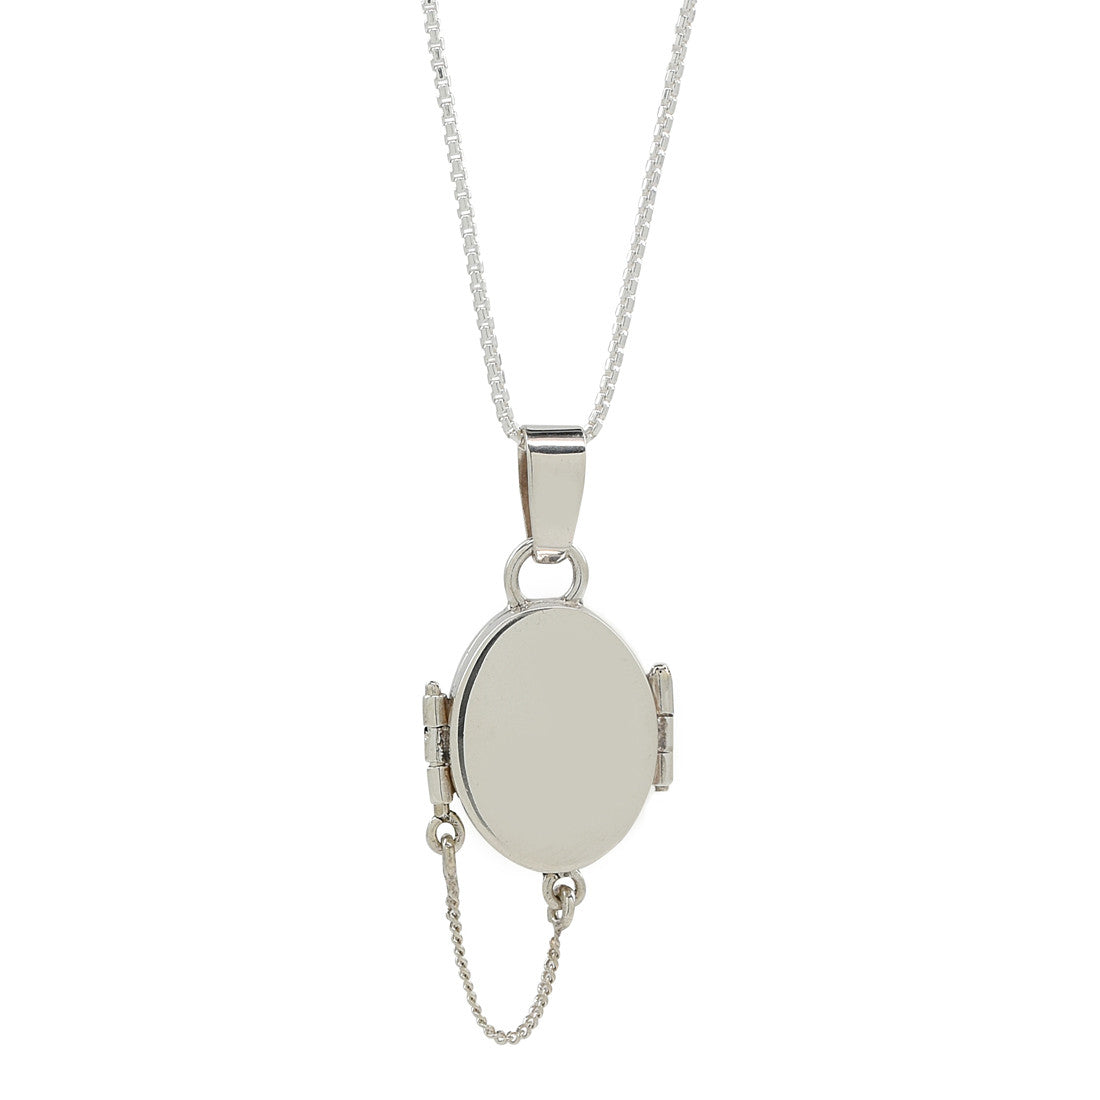 oval locket necklace in sterling silver .925